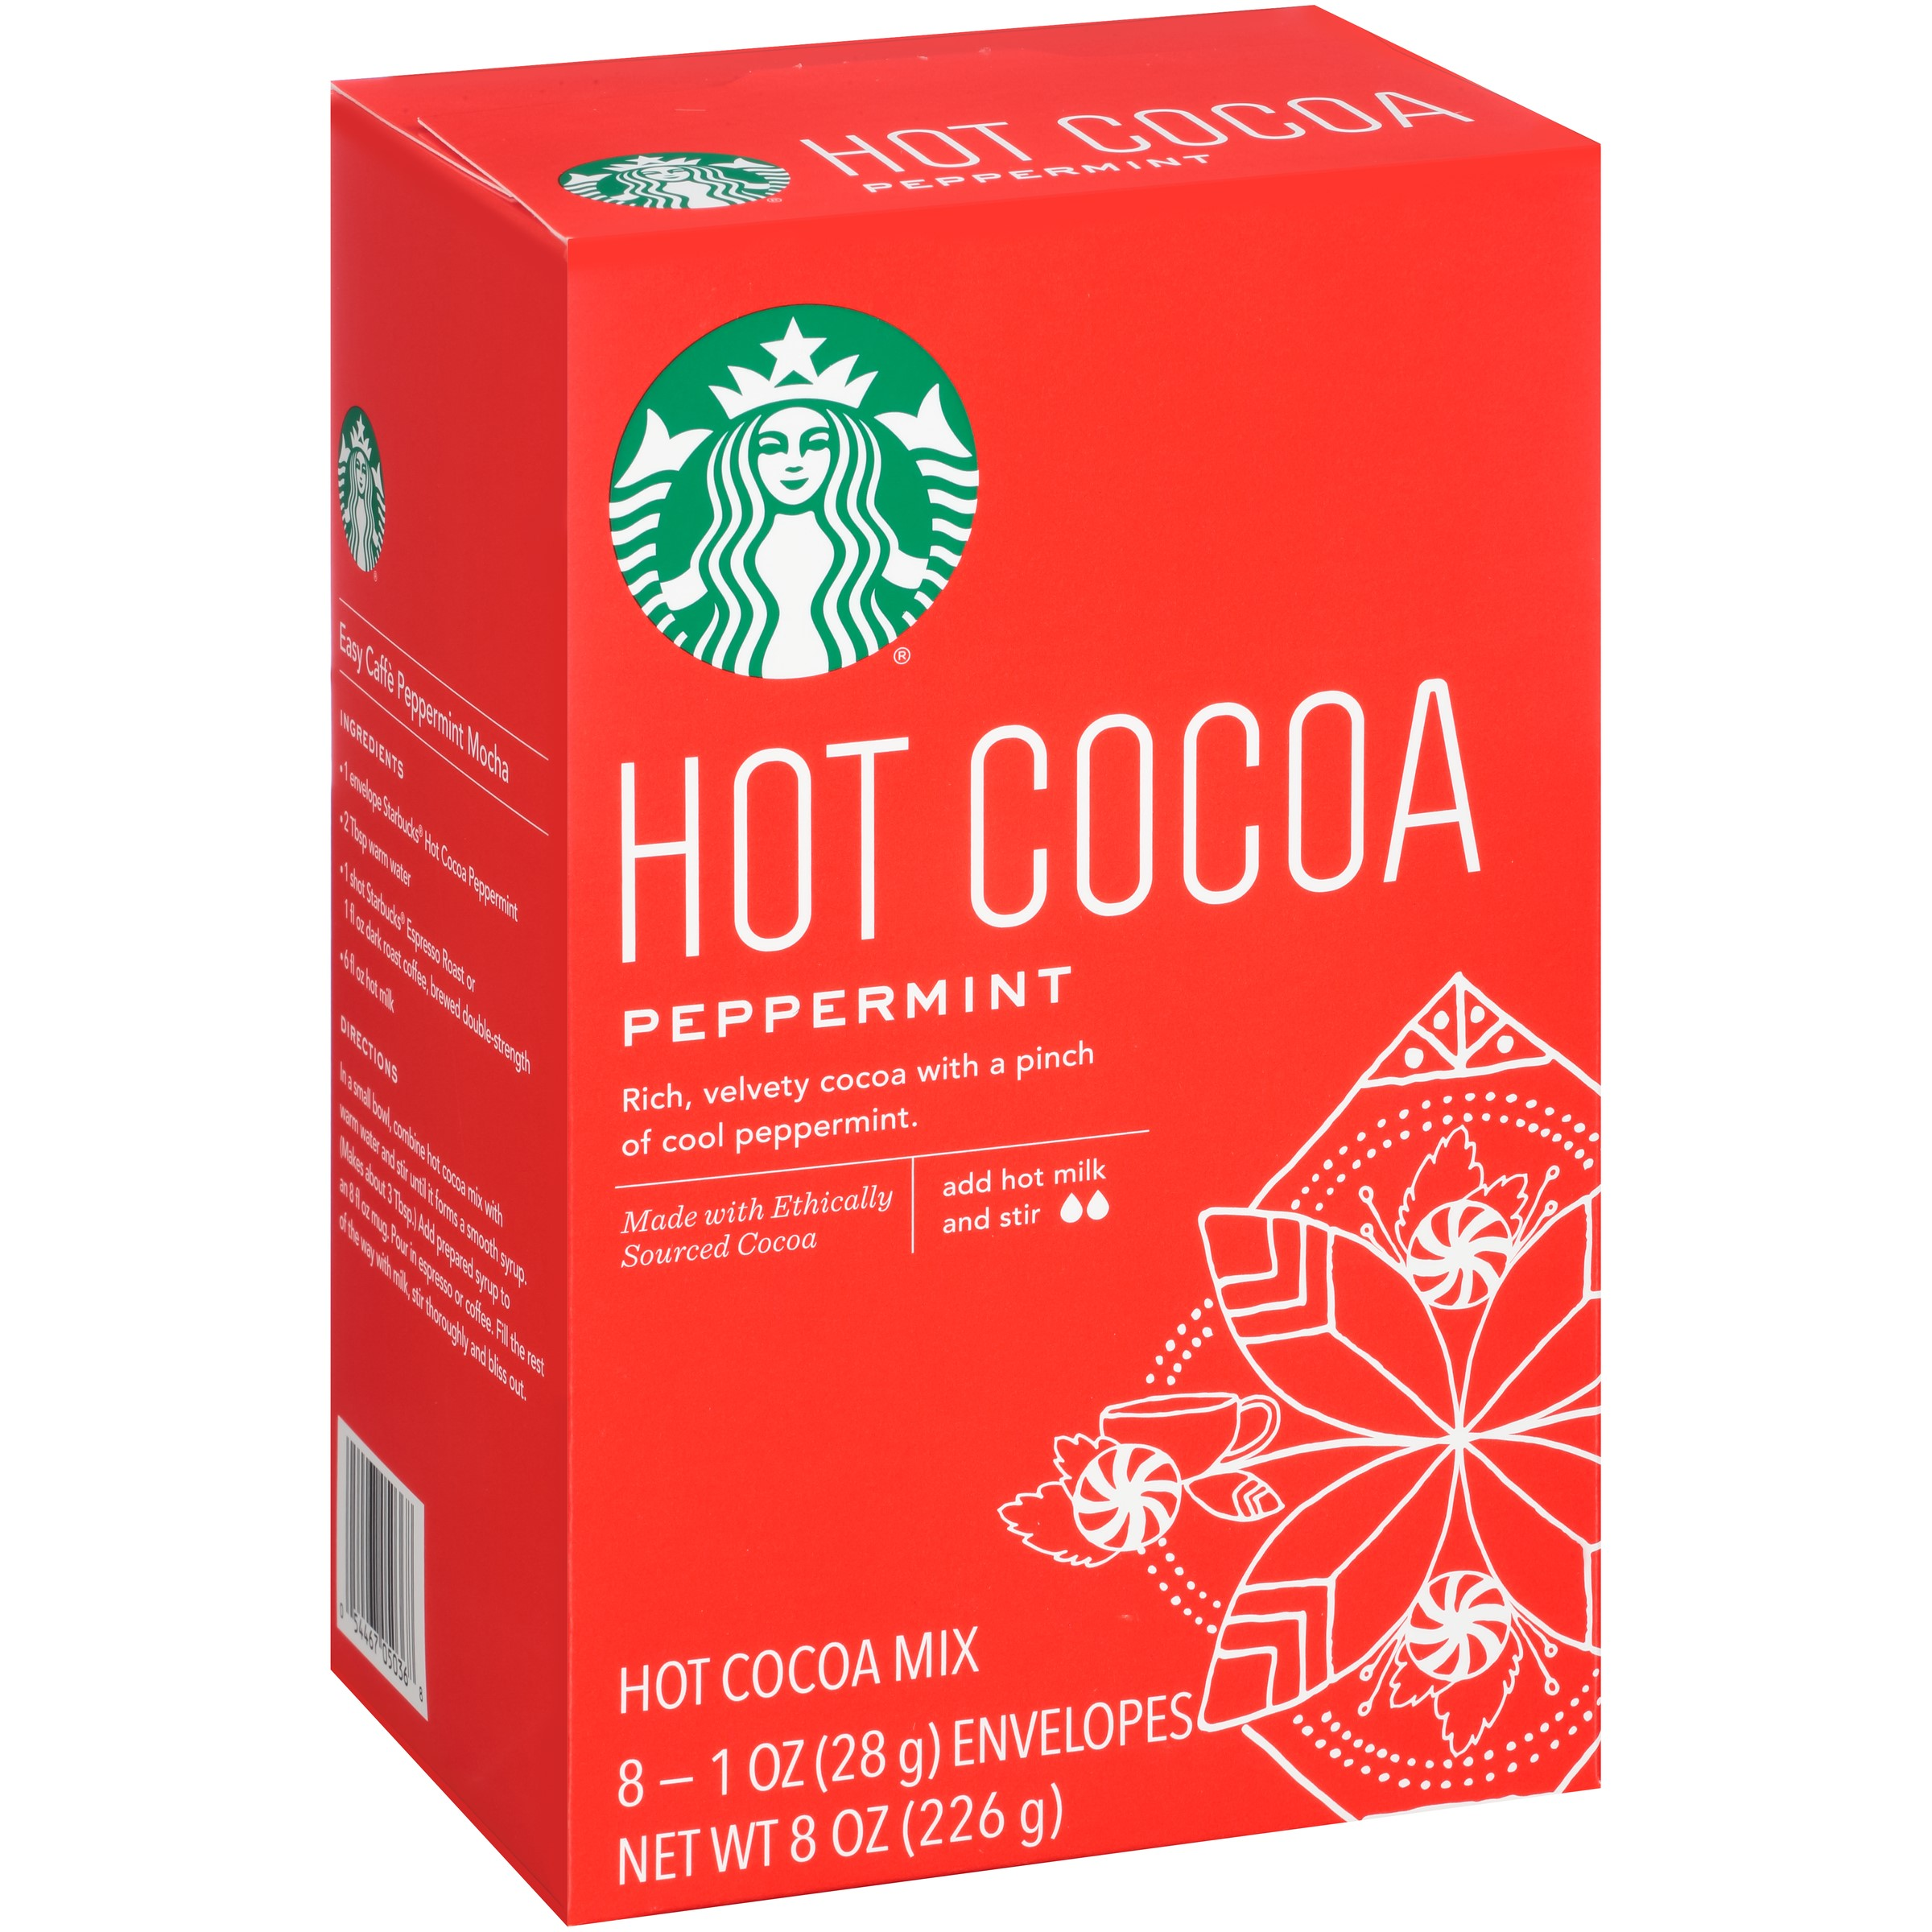 Starbucks Peppermint Hot Cocoa Mix, 8 count